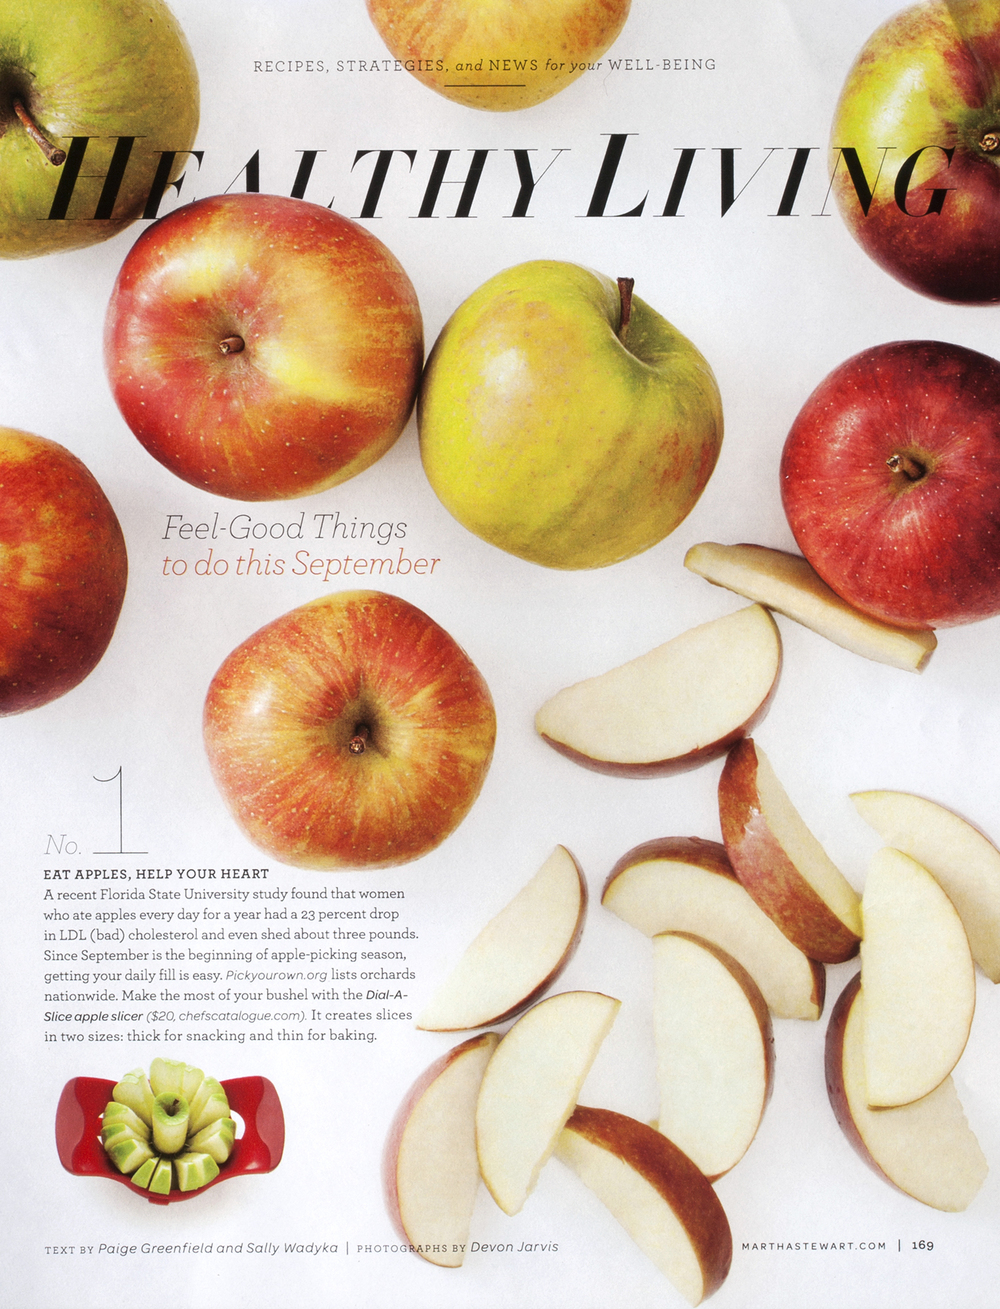 MarthaStewart-Apples-020-web.jpg